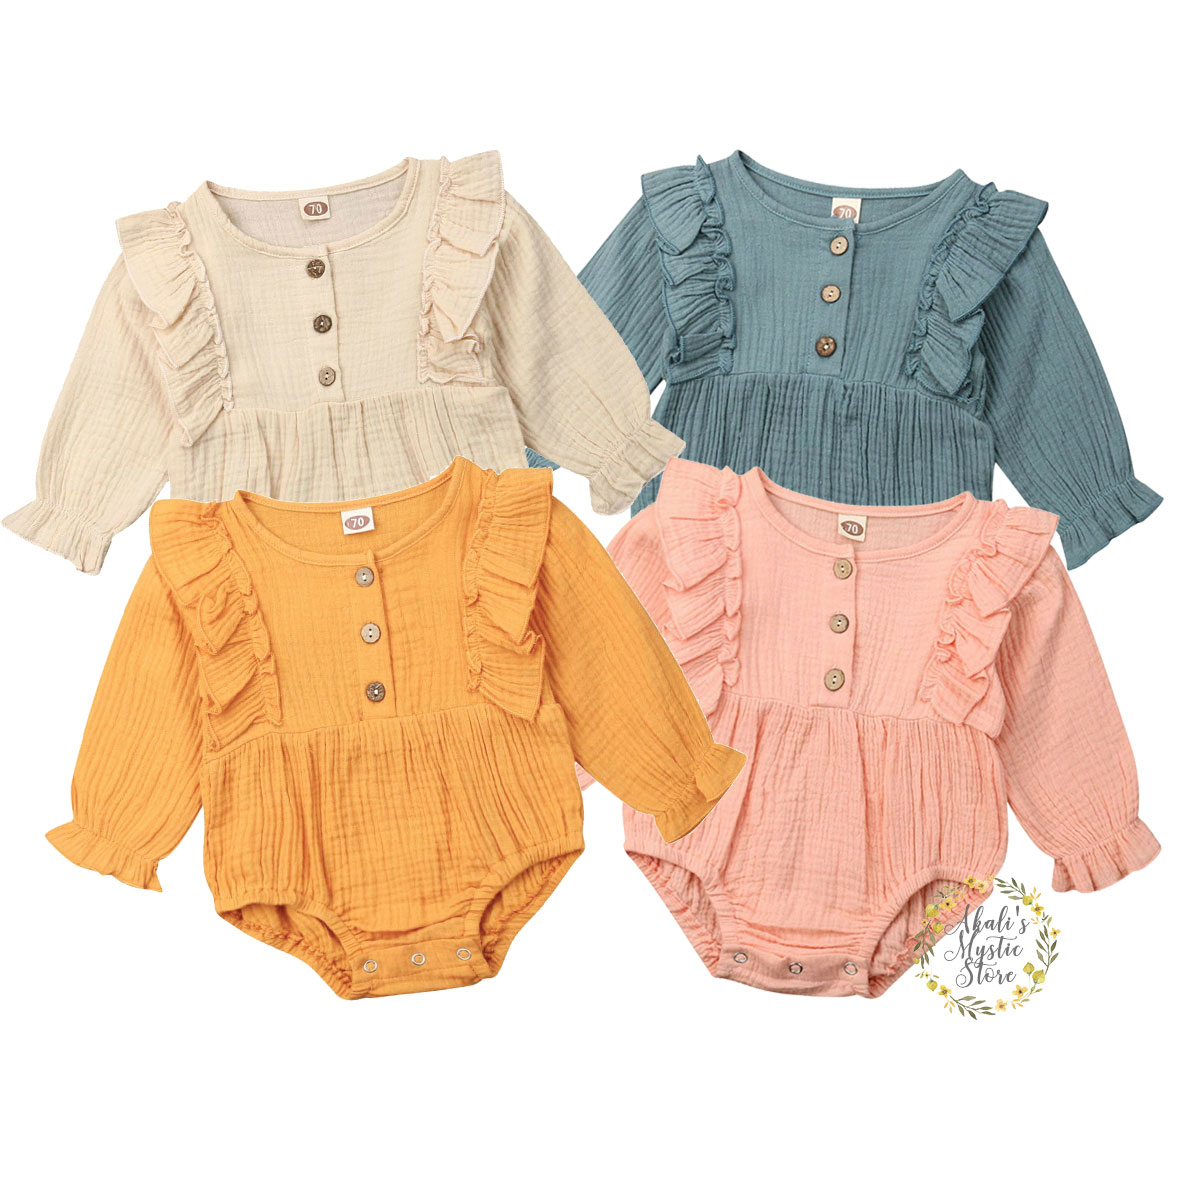 0-24M Newborn Infant Baby Girl Ruffles Romper Cute Button Long Sleeve Jumpsuit Playsuit Baby Girl Costumes Autumn Spring Clothes